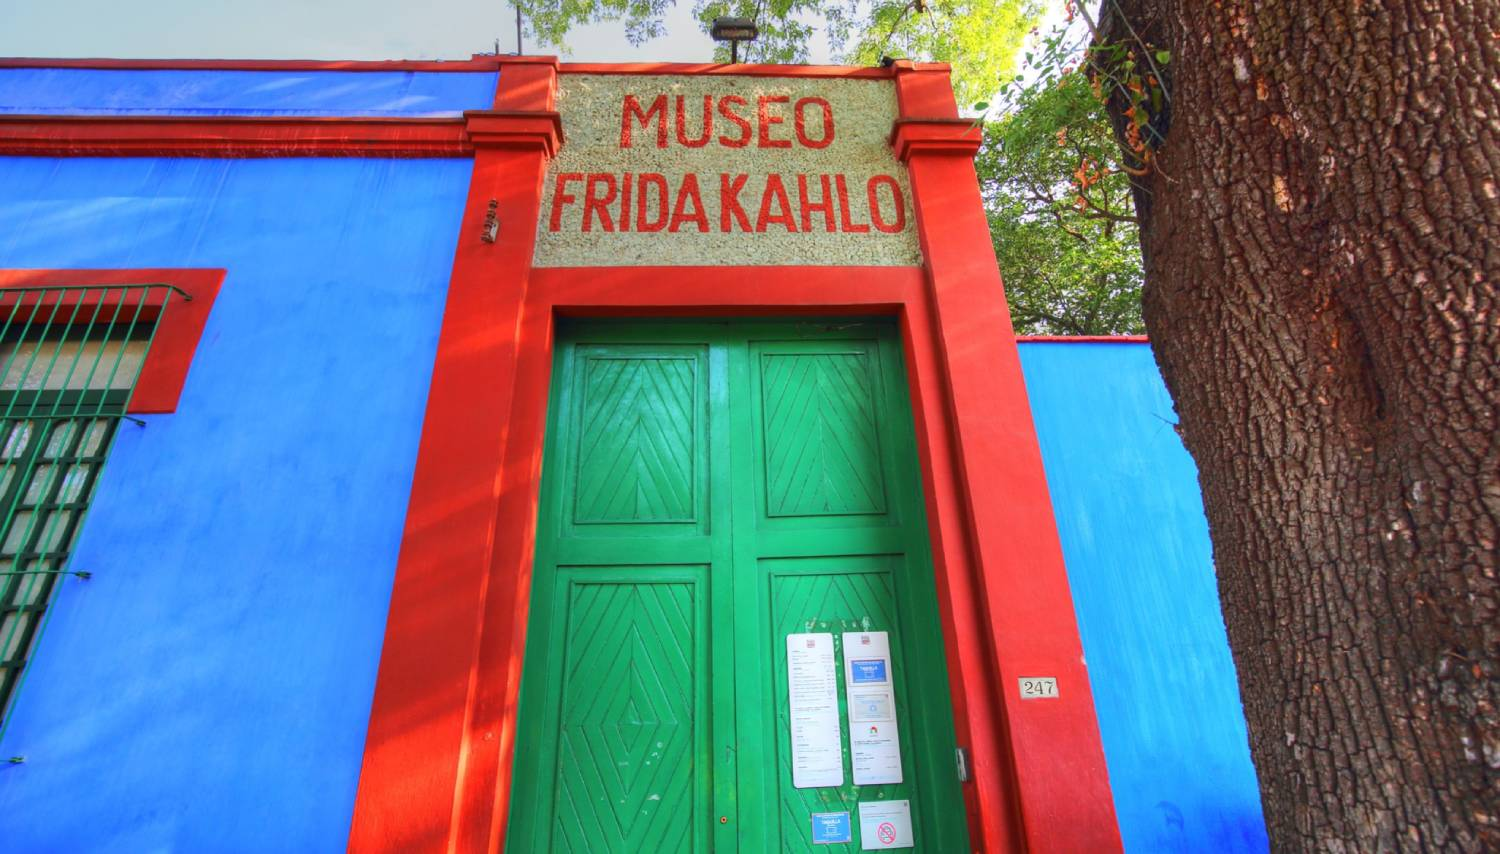 Frida Kahlo Museum (Museo Frida Kahlo) - Things To Do In Mexico City